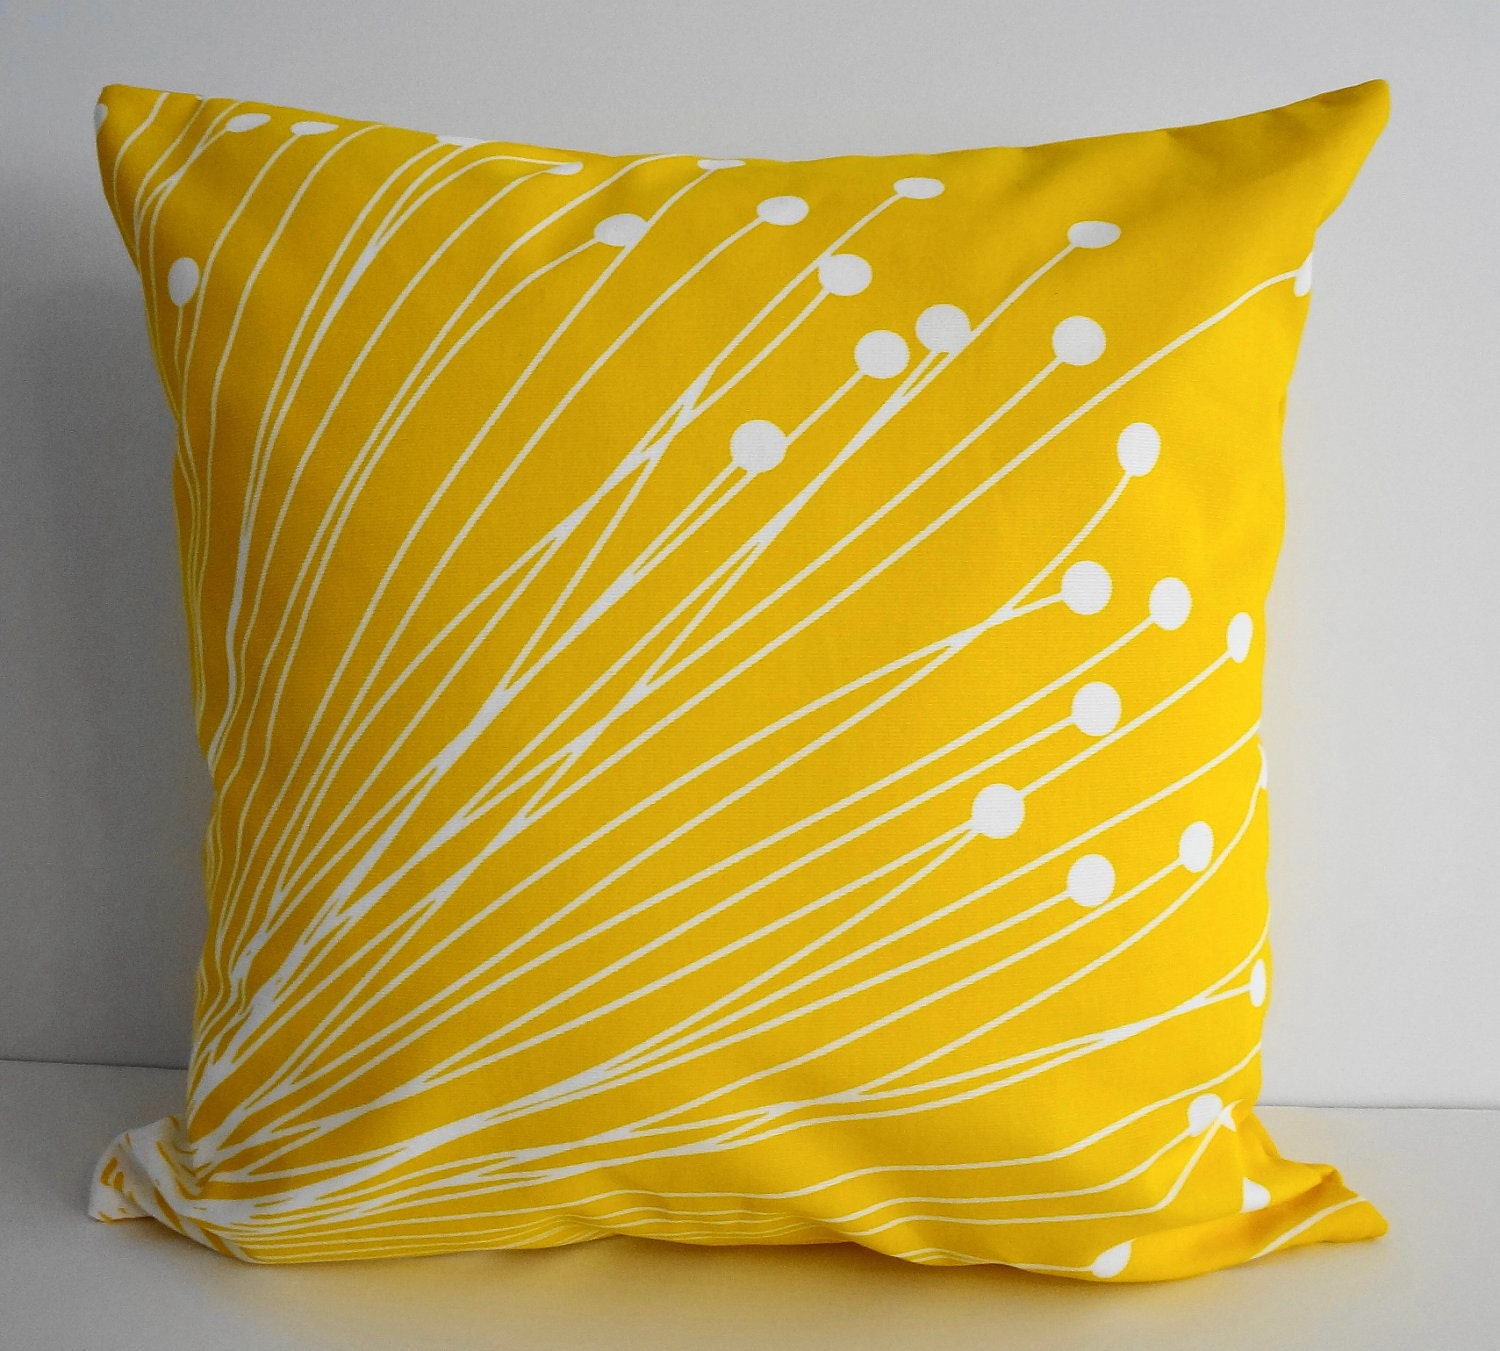 Throw Pillow Yellow : Yellow Starburst Pillow Covers Decorative Throw by pillows4fun